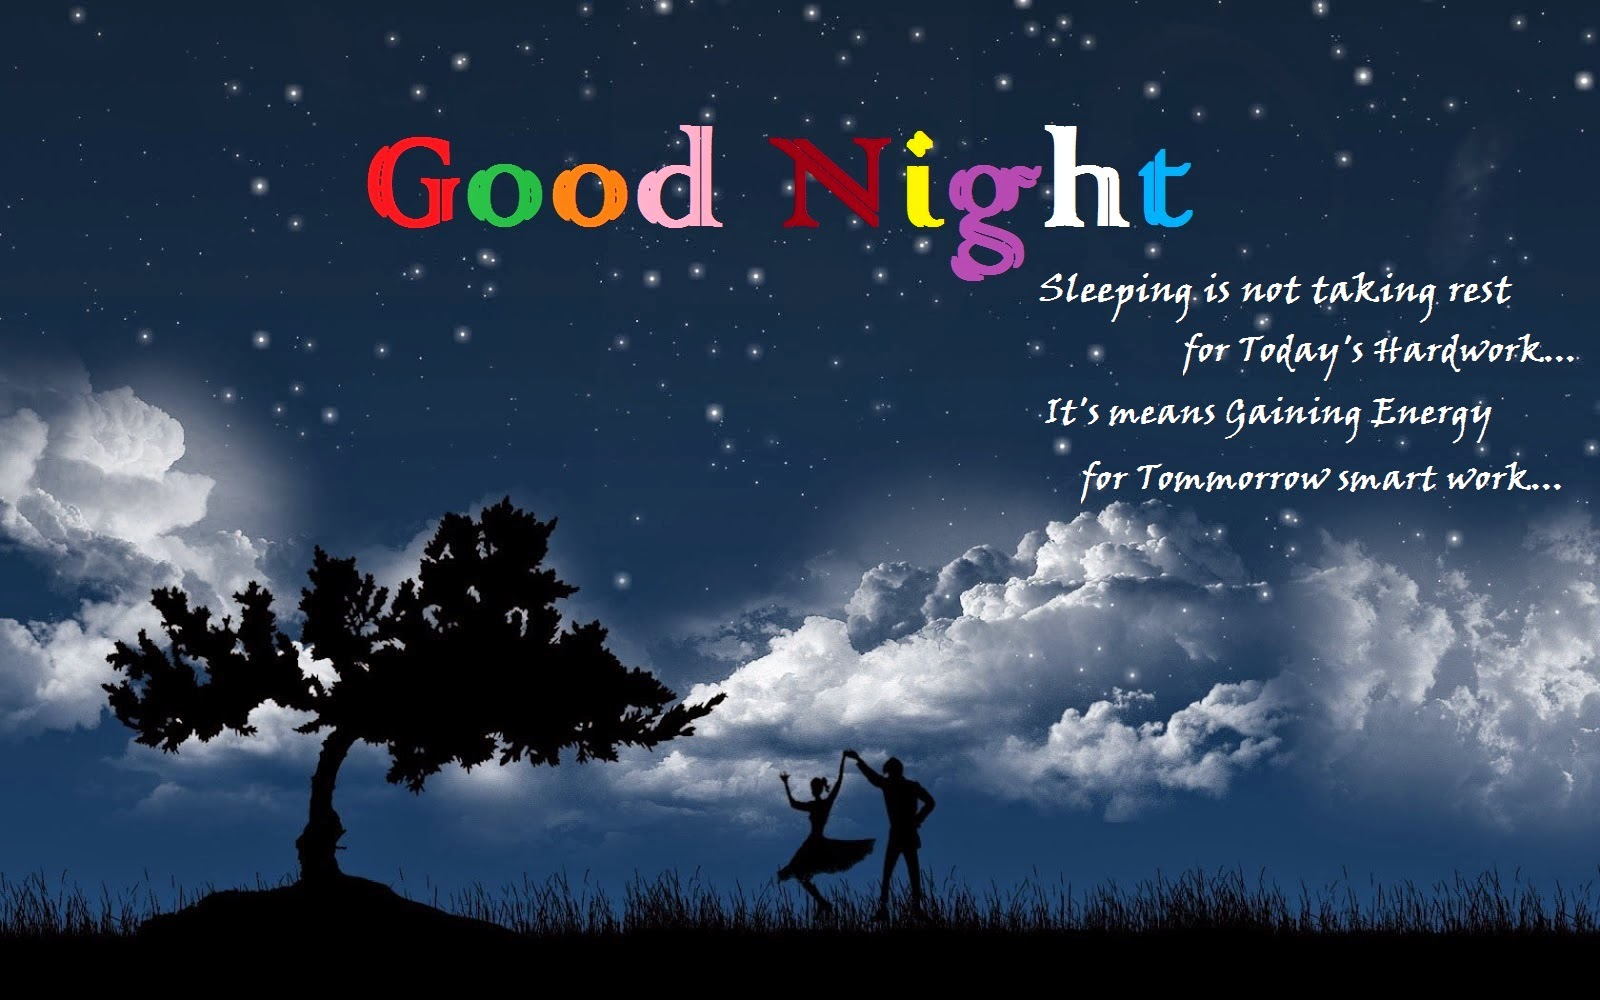 Good Nite HD Wallpaper